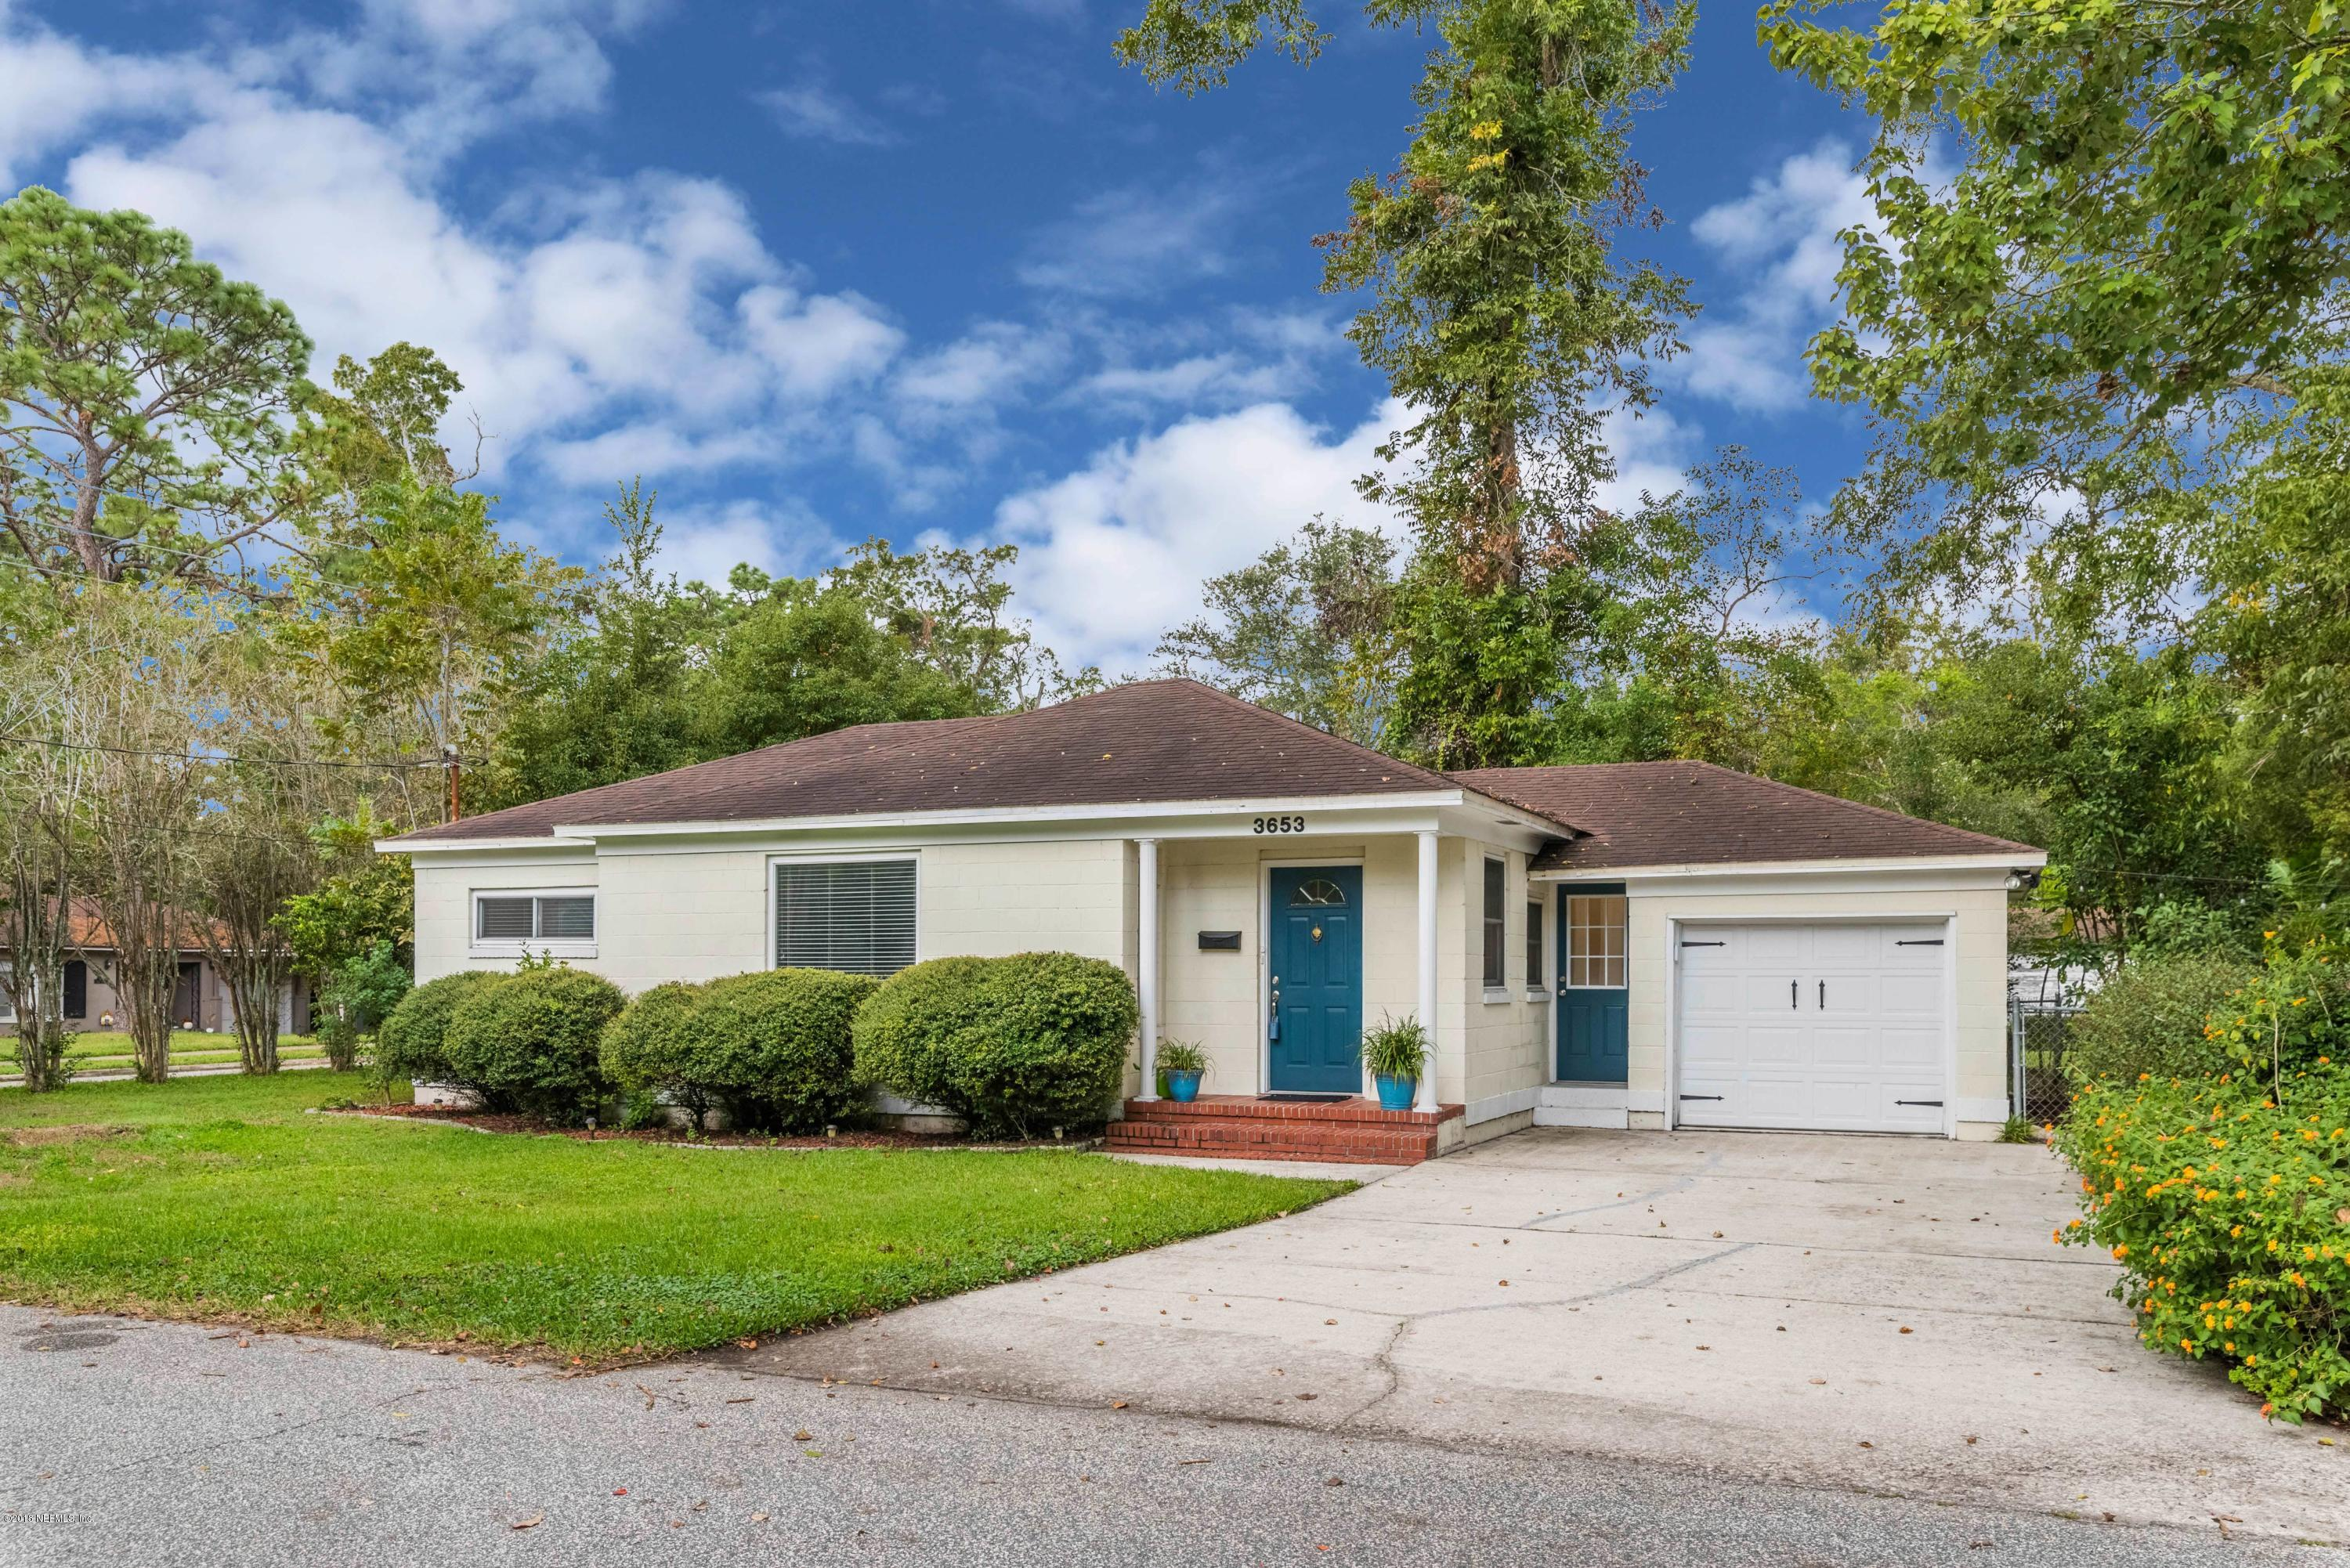 3653 HOLLINGSWORTH, JACKSONVILLE, FLORIDA 32205, 2 Bedrooms Bedrooms, ,1 BathroomBathrooms,Residential - single family,For sale,HOLLINGSWORTH,956003